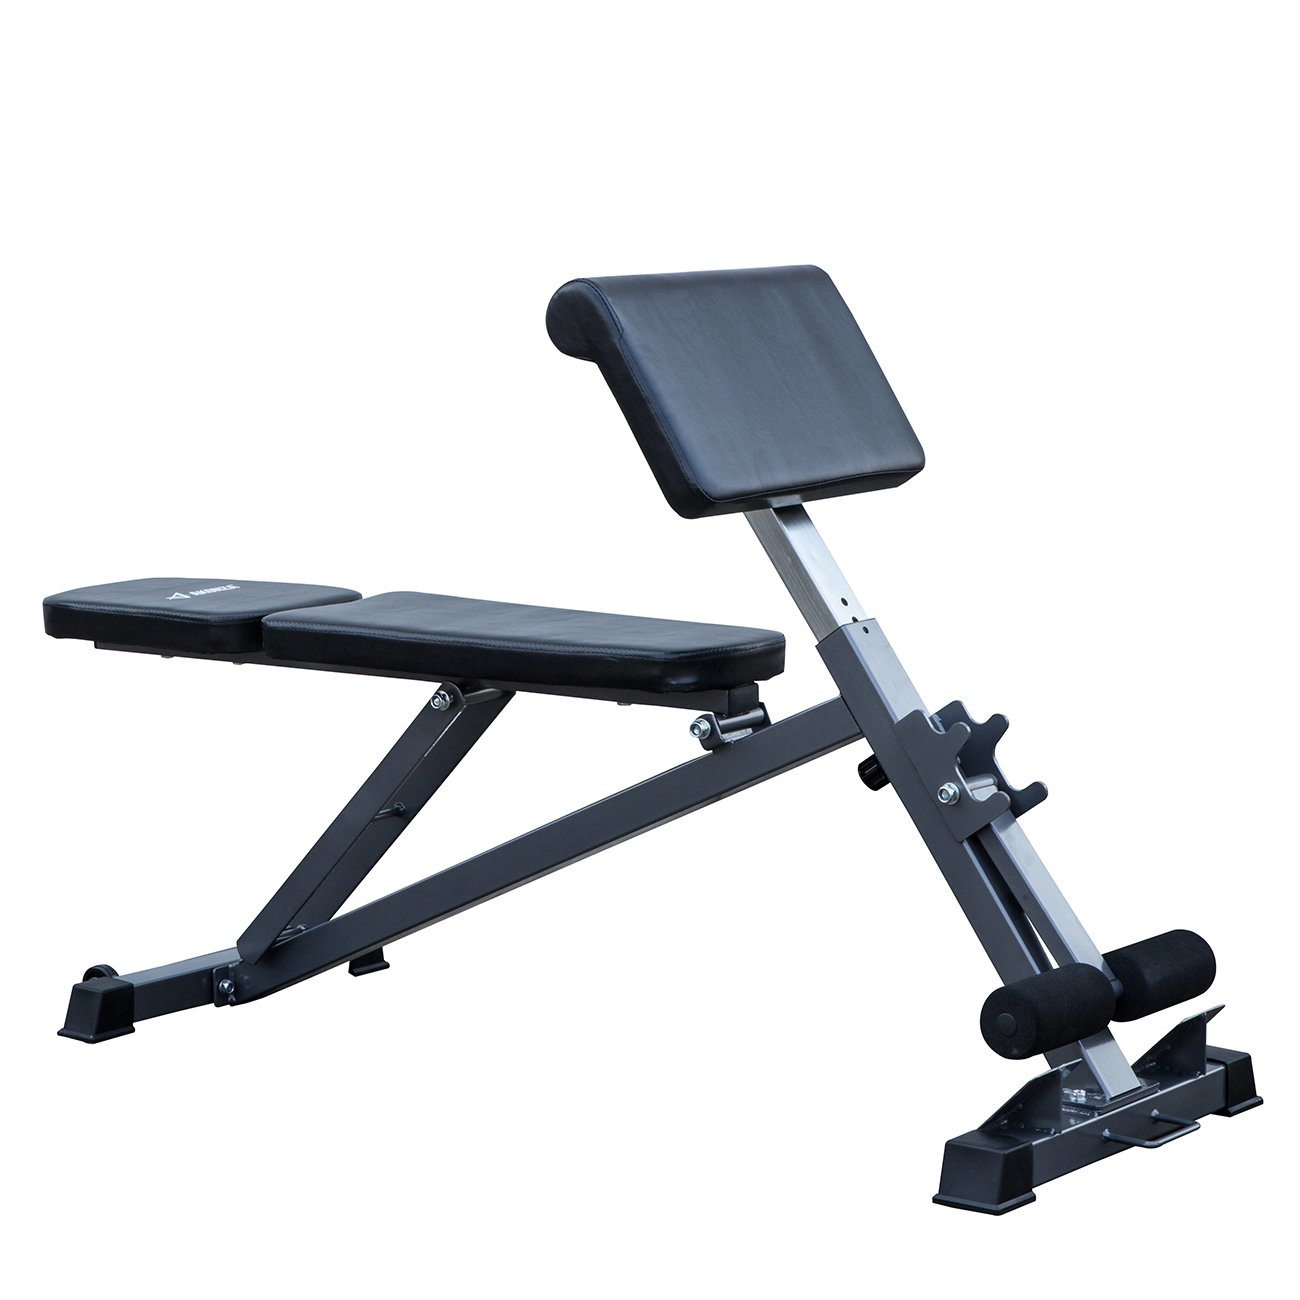 Akonza All-in-One Bench Ab, Hyperextension Preacher Adjustable Curl Weight Bench Fitness by Akonza